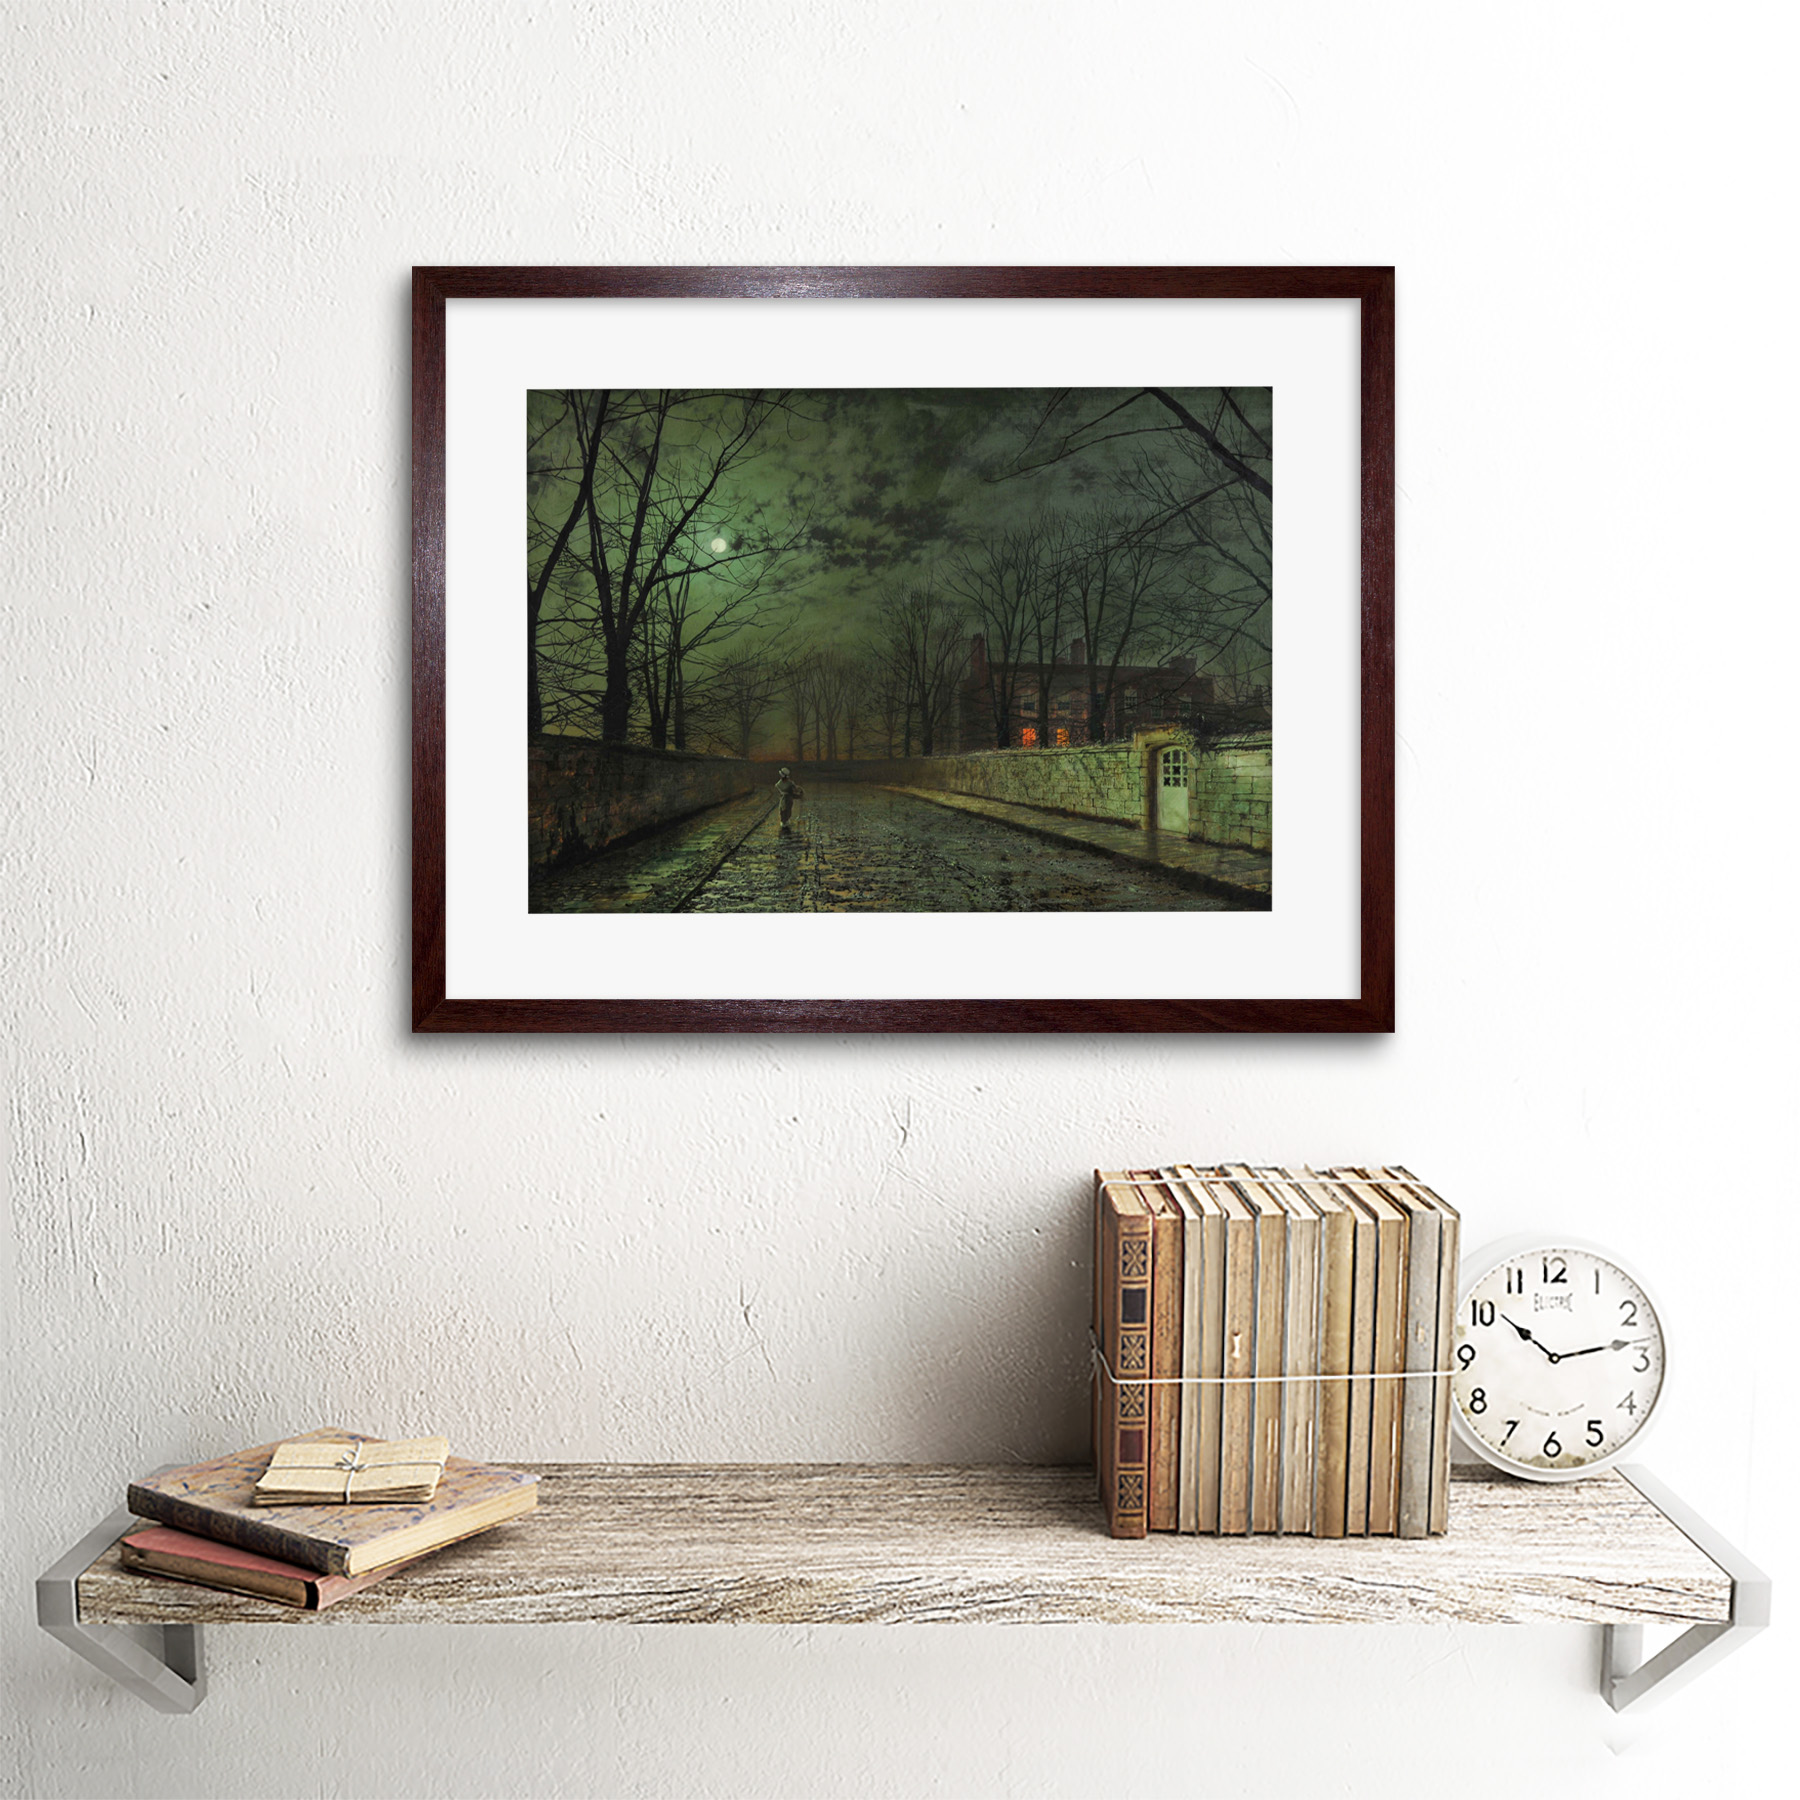 thumbnail 8 - Grimshaw-Moonlit-Street-Painting-Framed-Art-Print-Picture-Mount-12x16-Inch